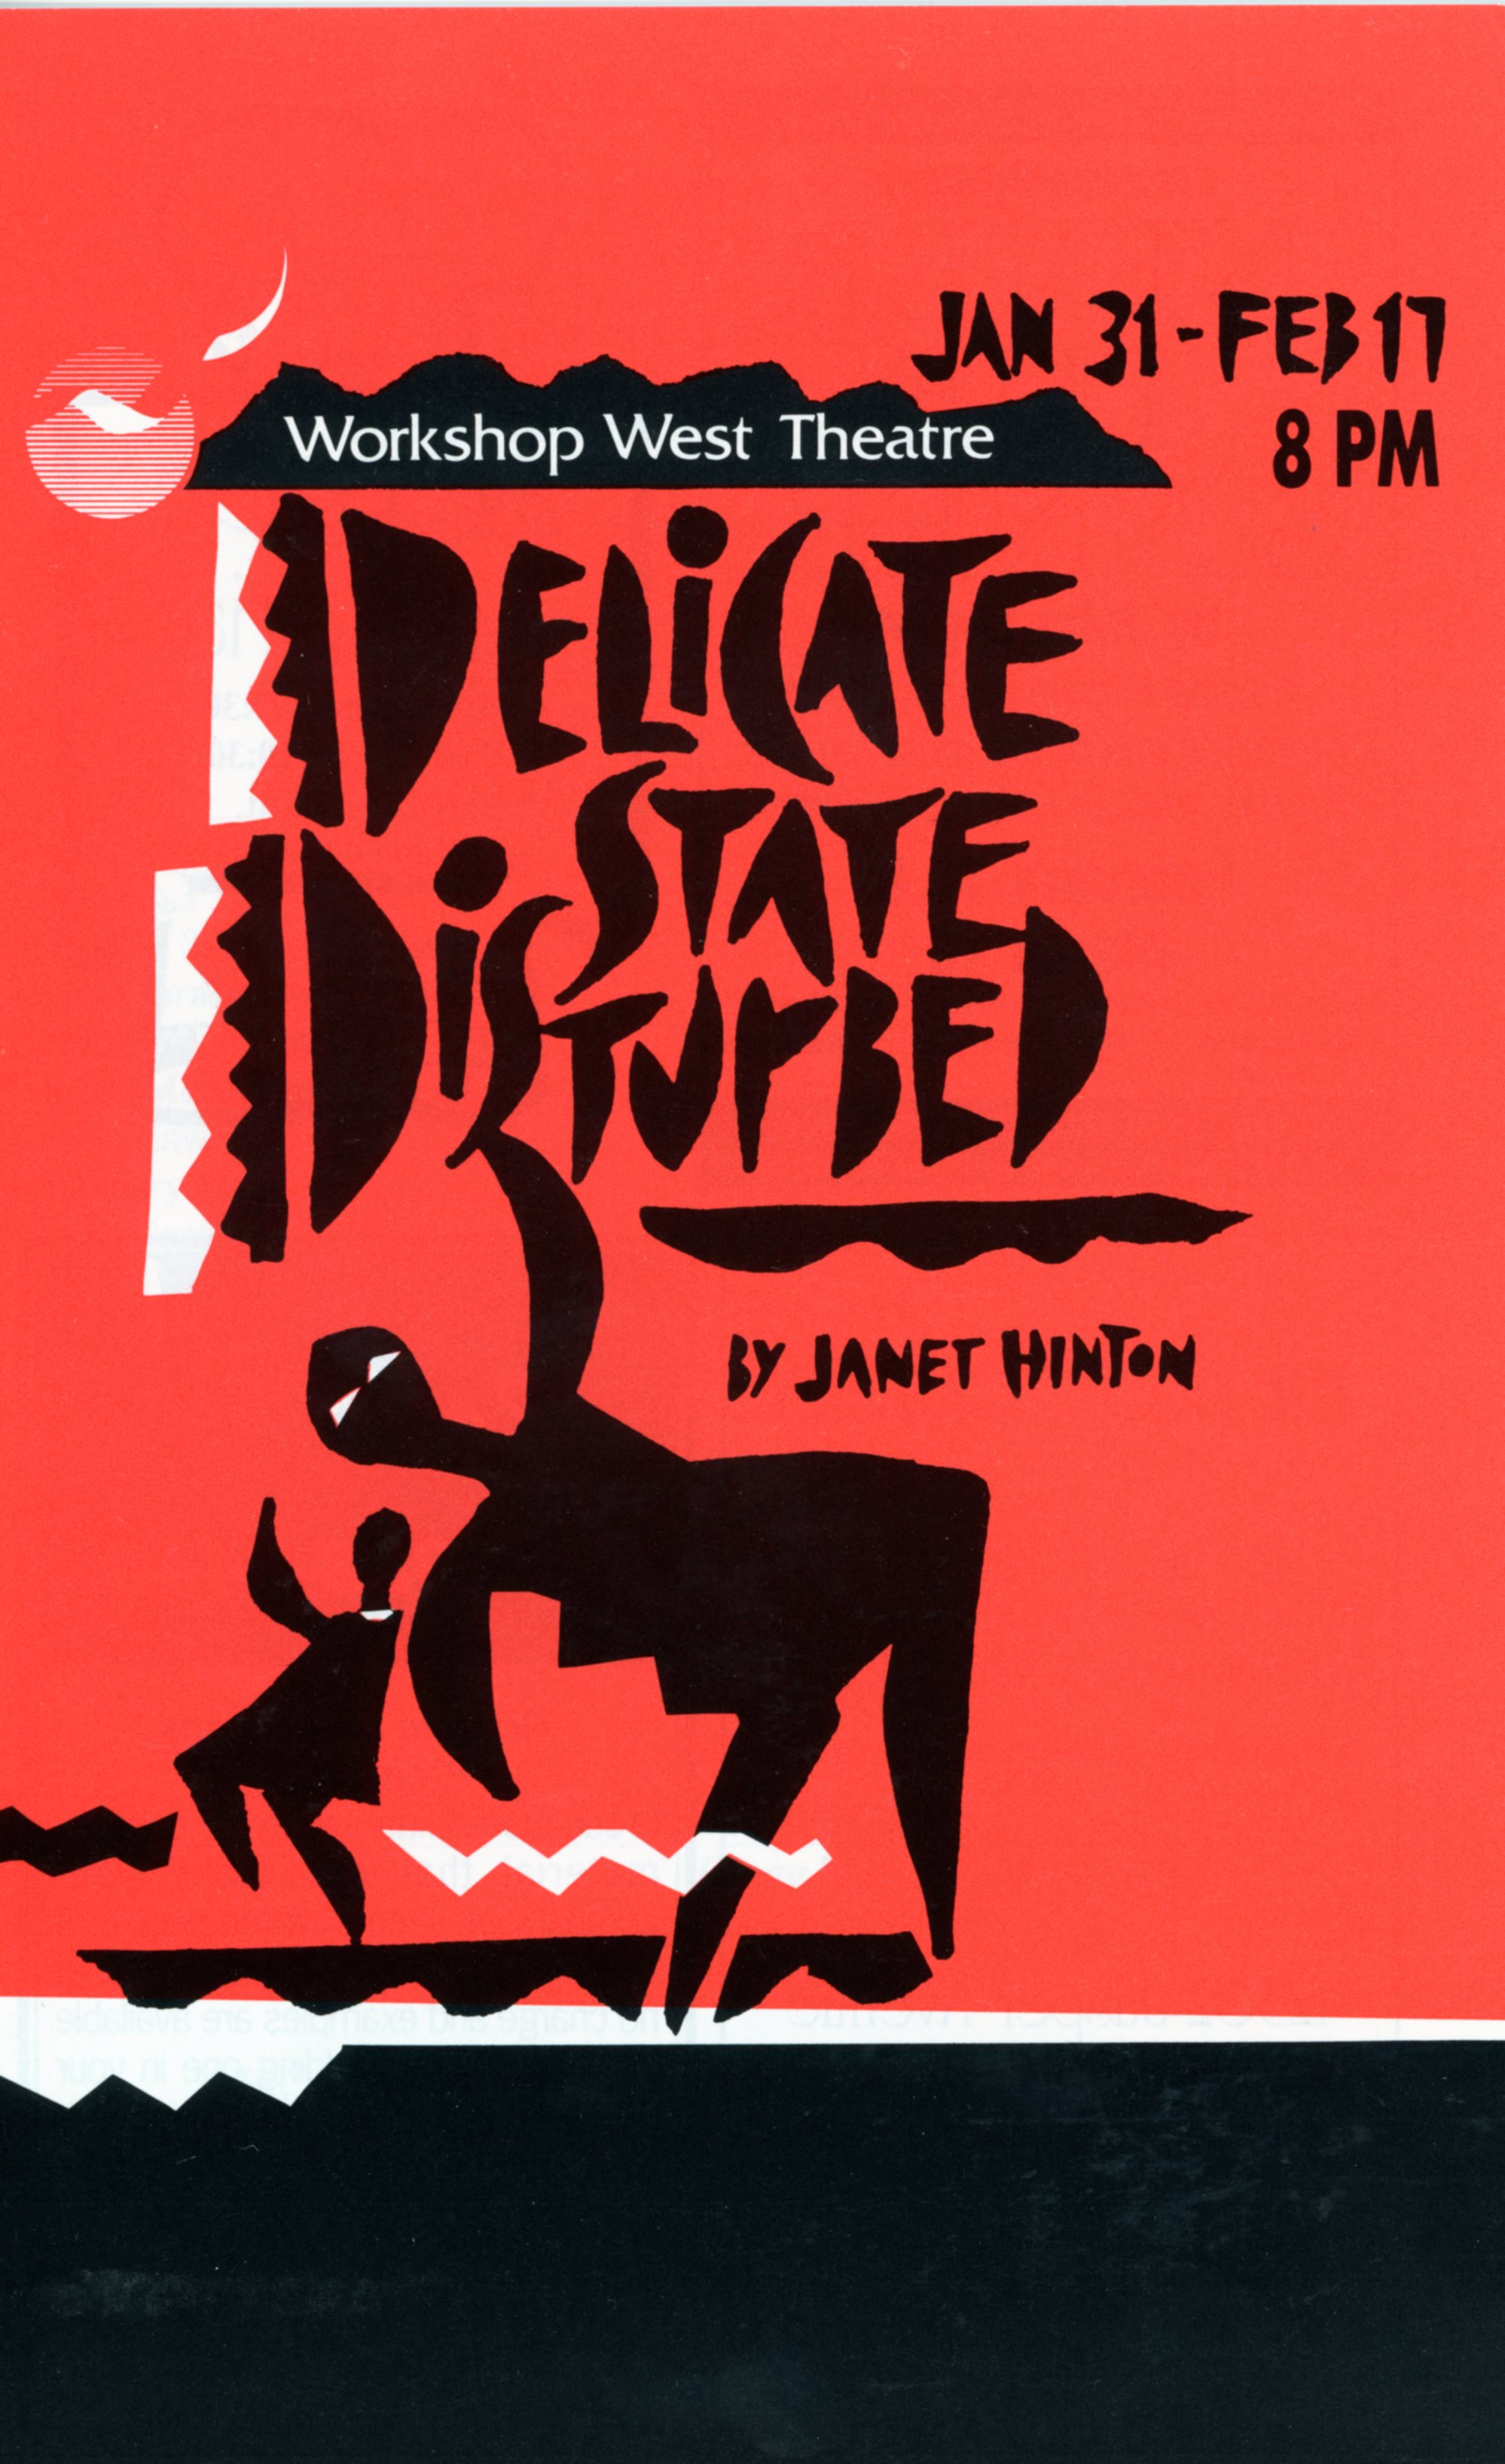 Delicate State Distrubed (January, 1991)-Program Cover JPEG.jpg